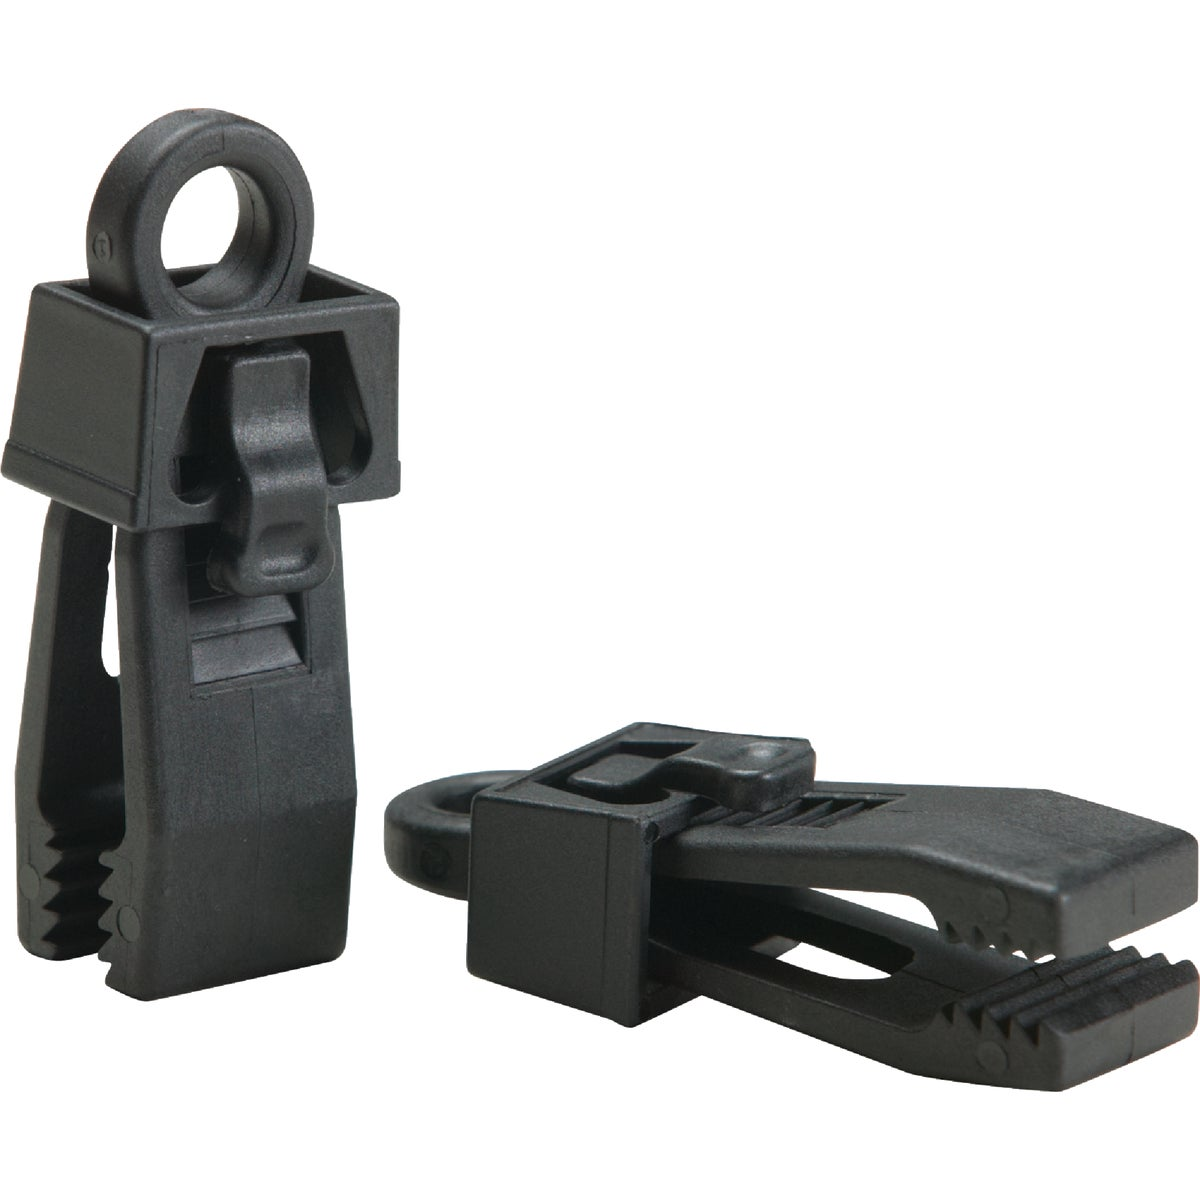 BULK CROCODILE CLIP - 5300 by Homax Group Inc